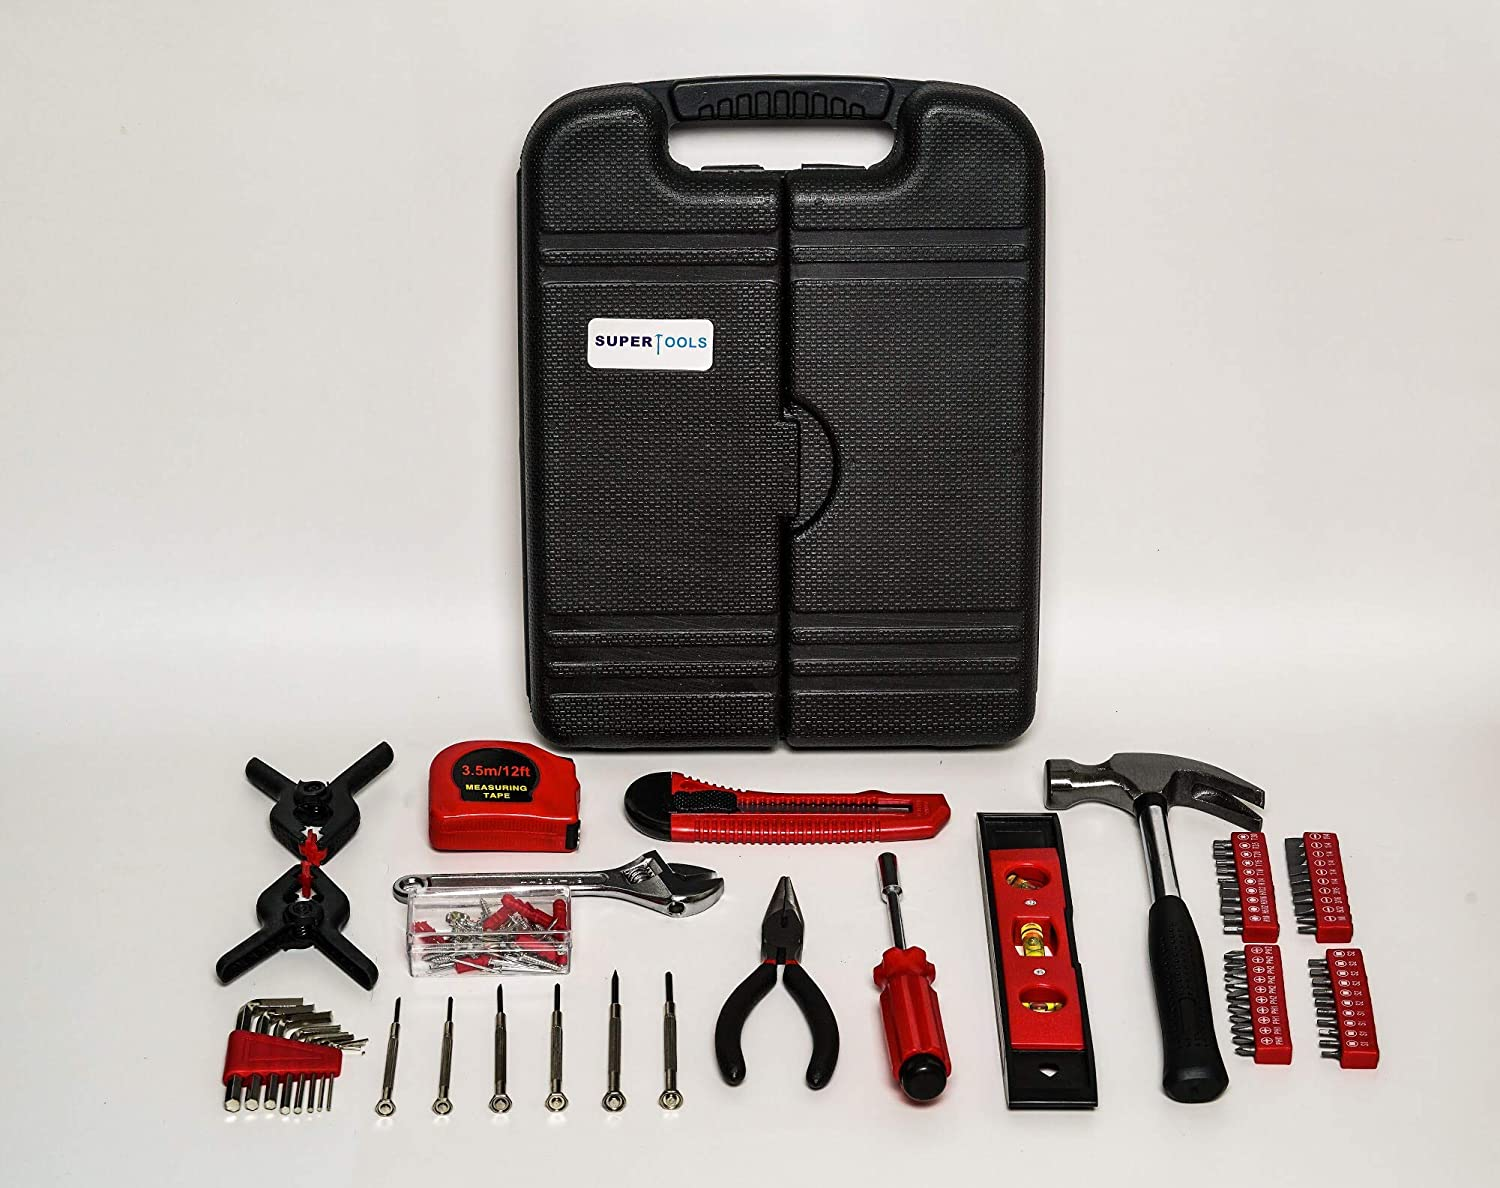 Super Tools 148-Piece Household Tool Set General Household Hand Tool Kit with Plastic Toolbox Storage Case